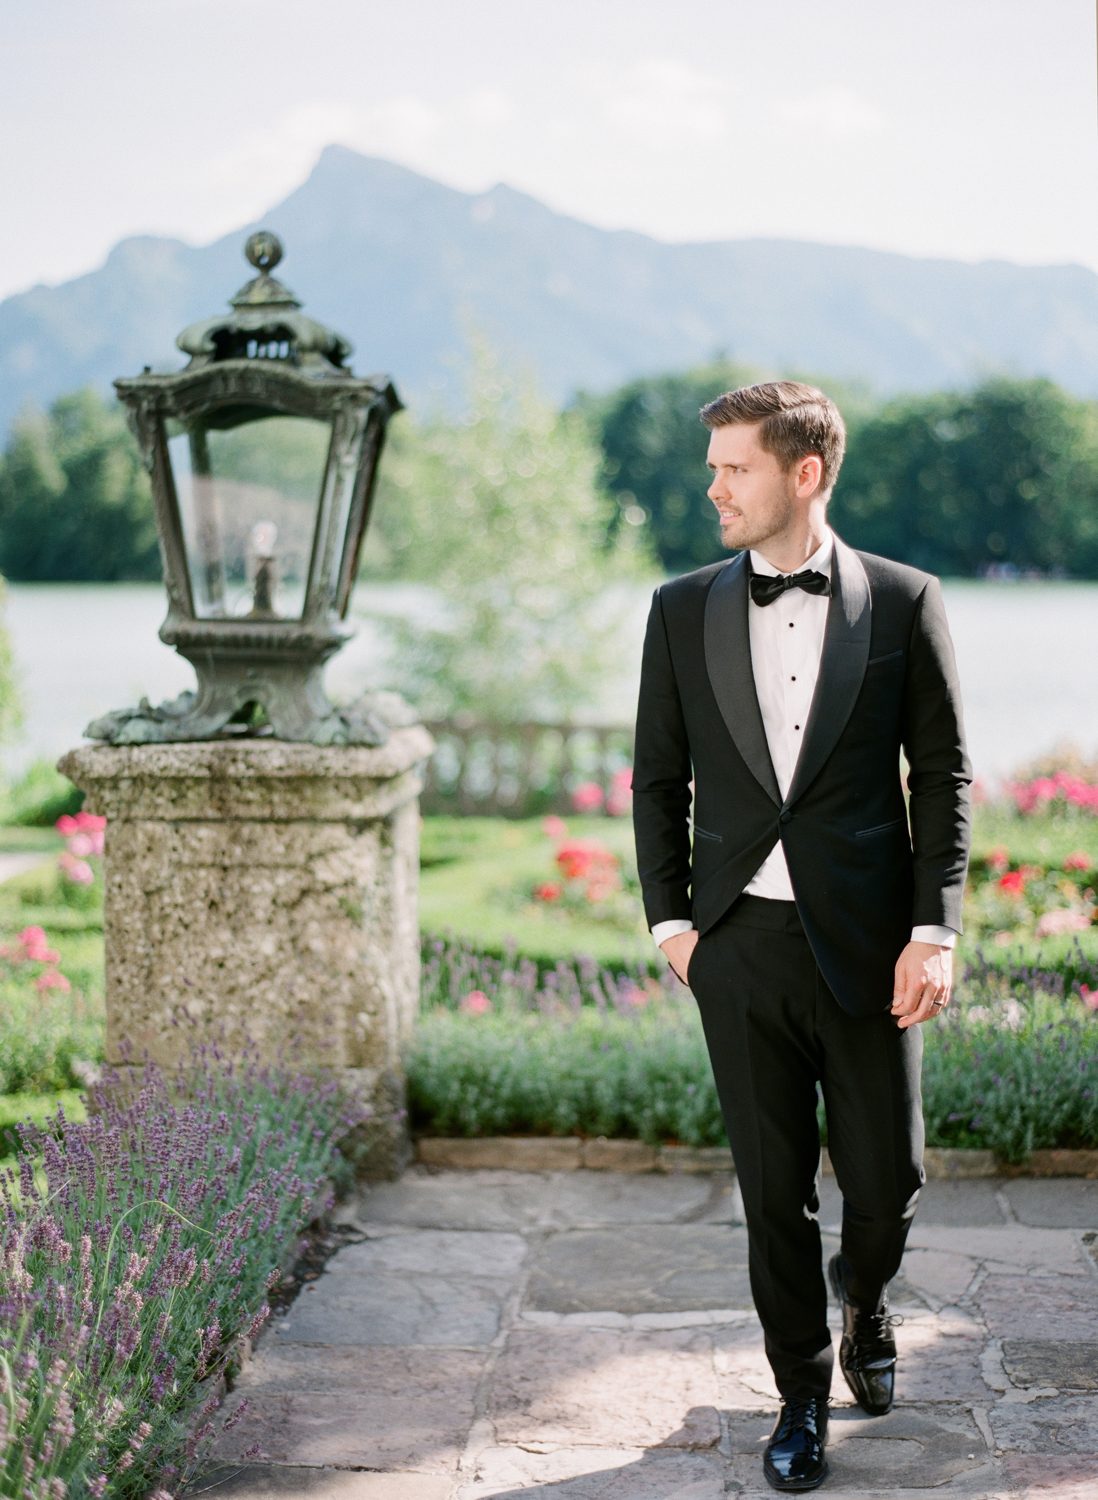 lake_como_wedding_photographer_nikol_bodnarova_178.JPG